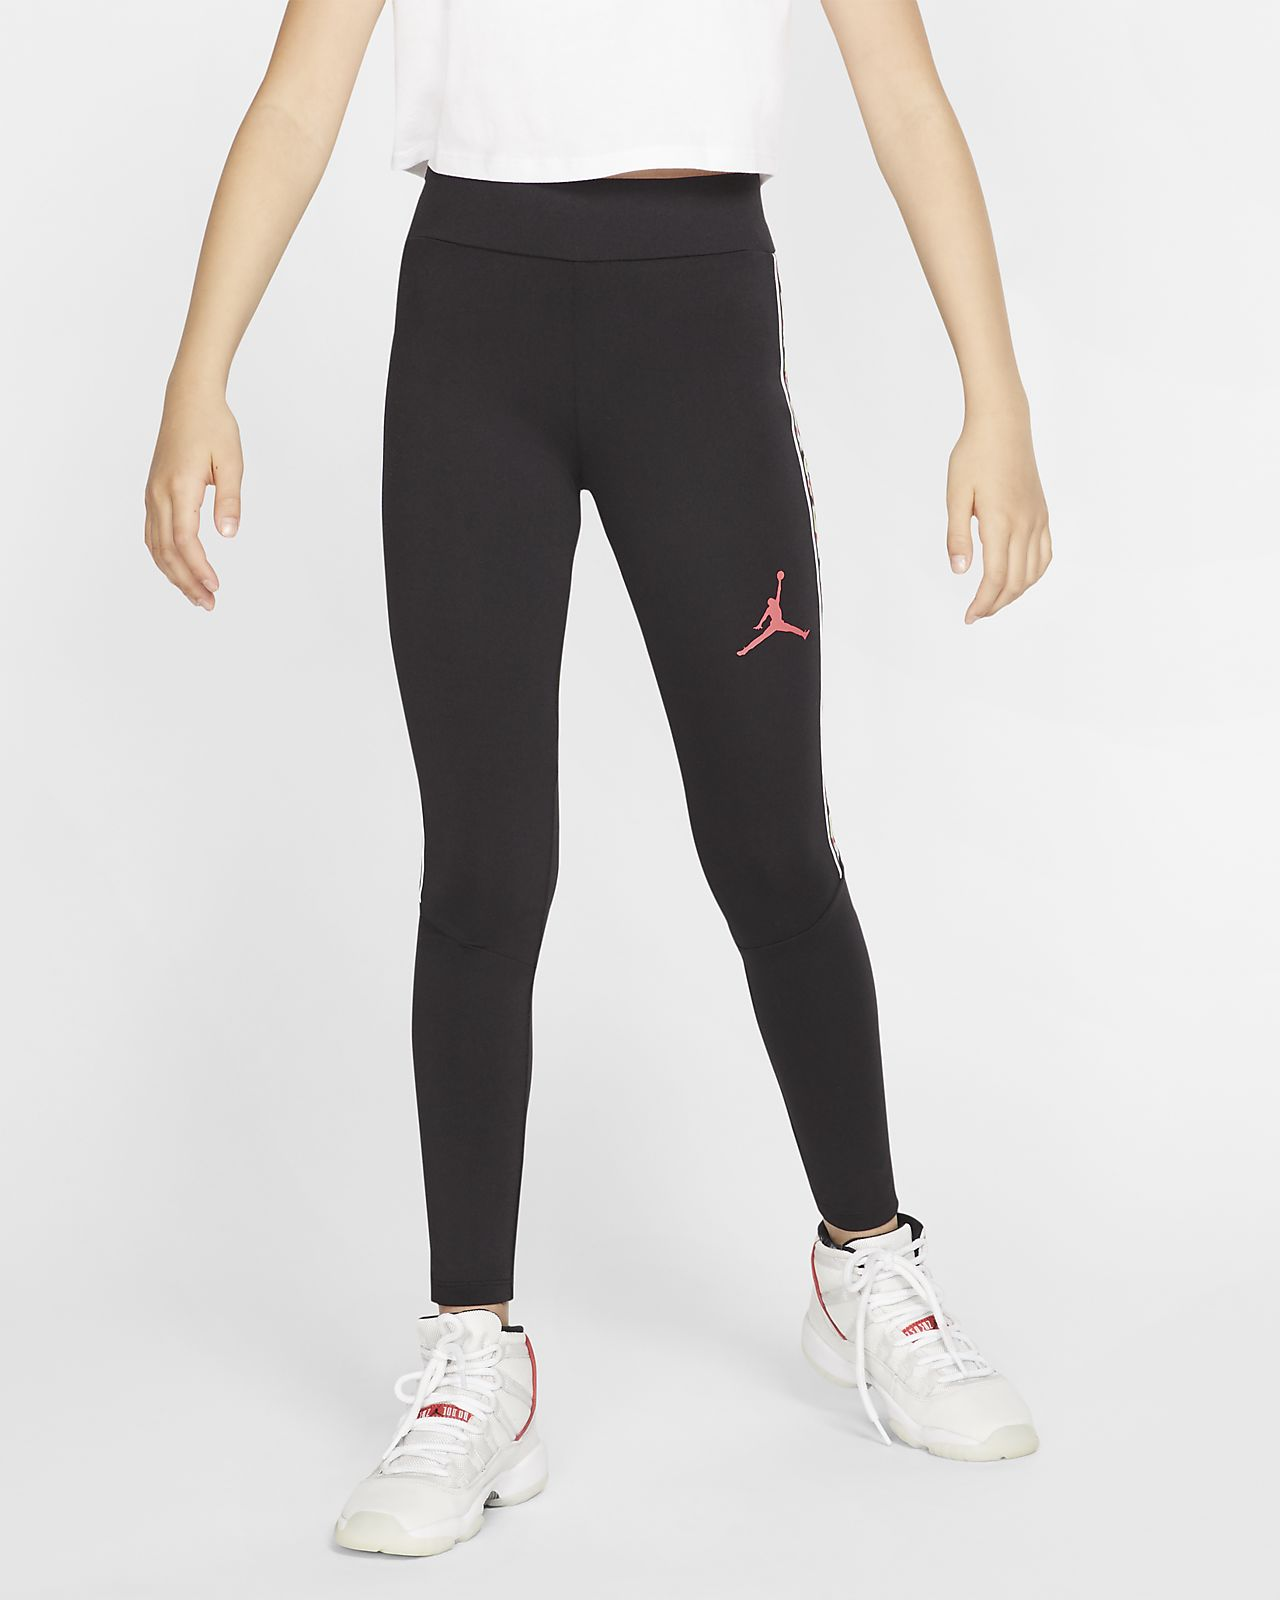 Jordan Dri-FIT Big Kids' (Girls') Leggings